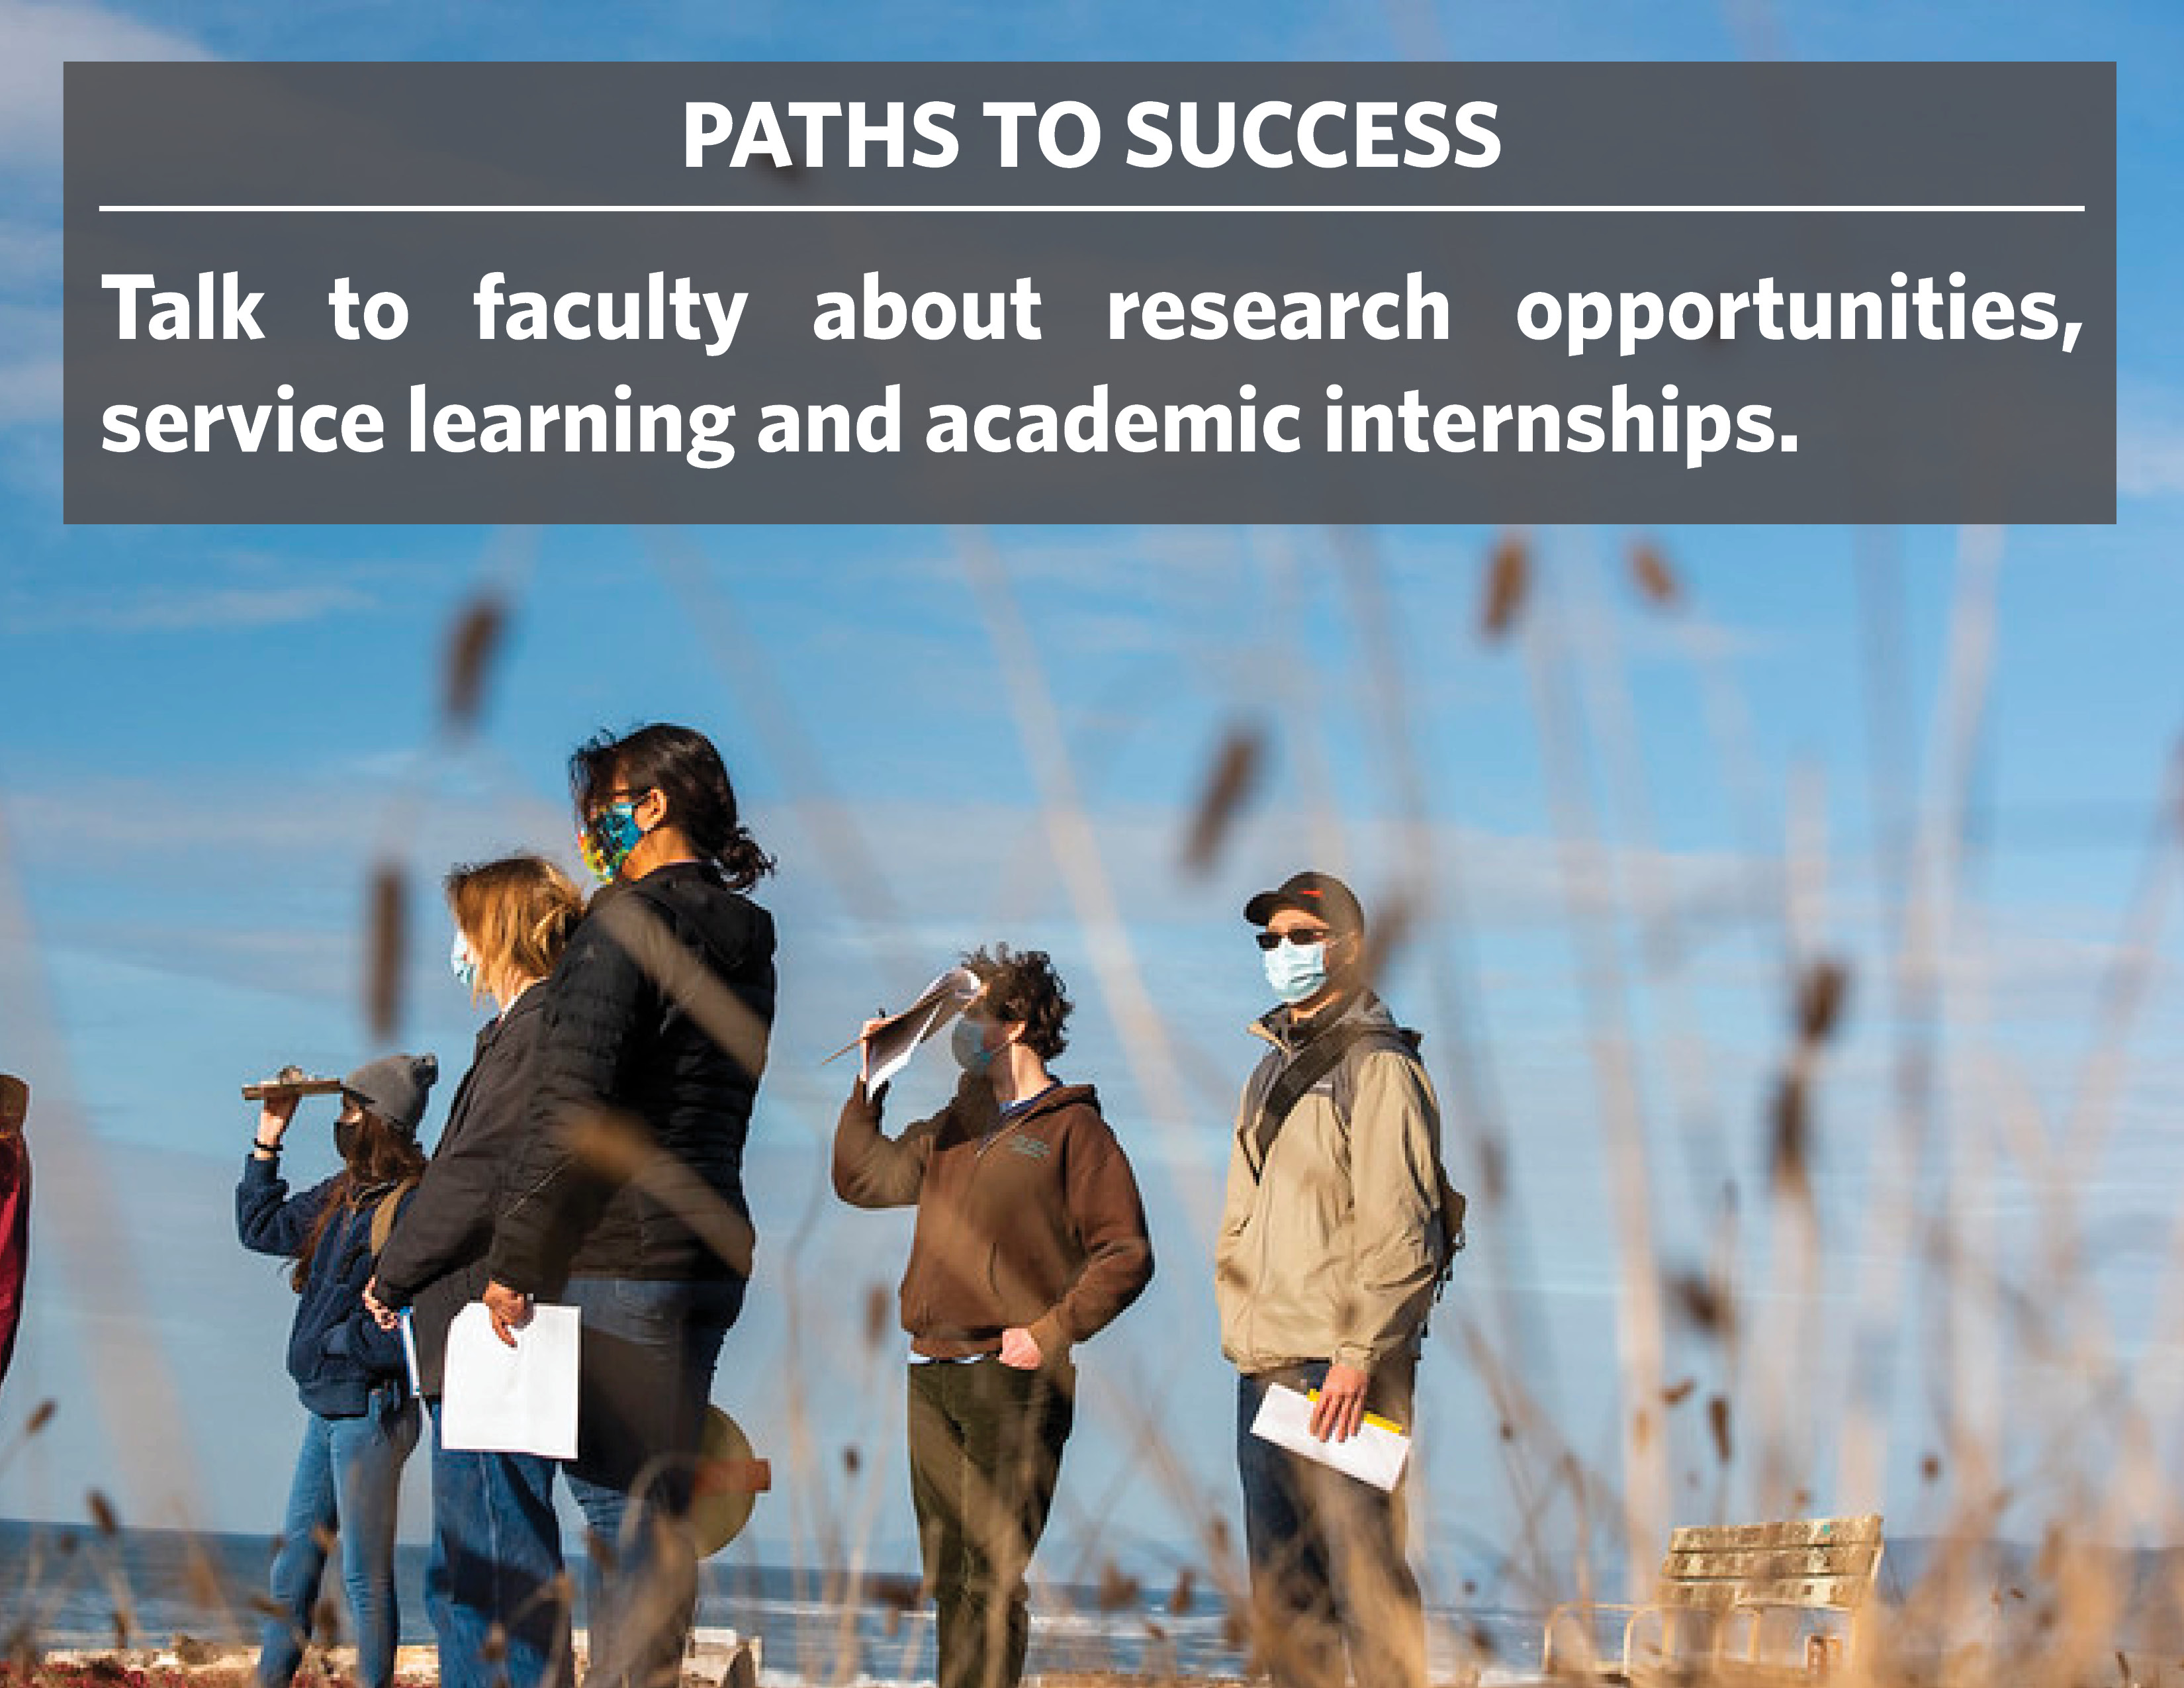 Paths to success: Talk to faculty about research opportunities, service learning, and academic internships.